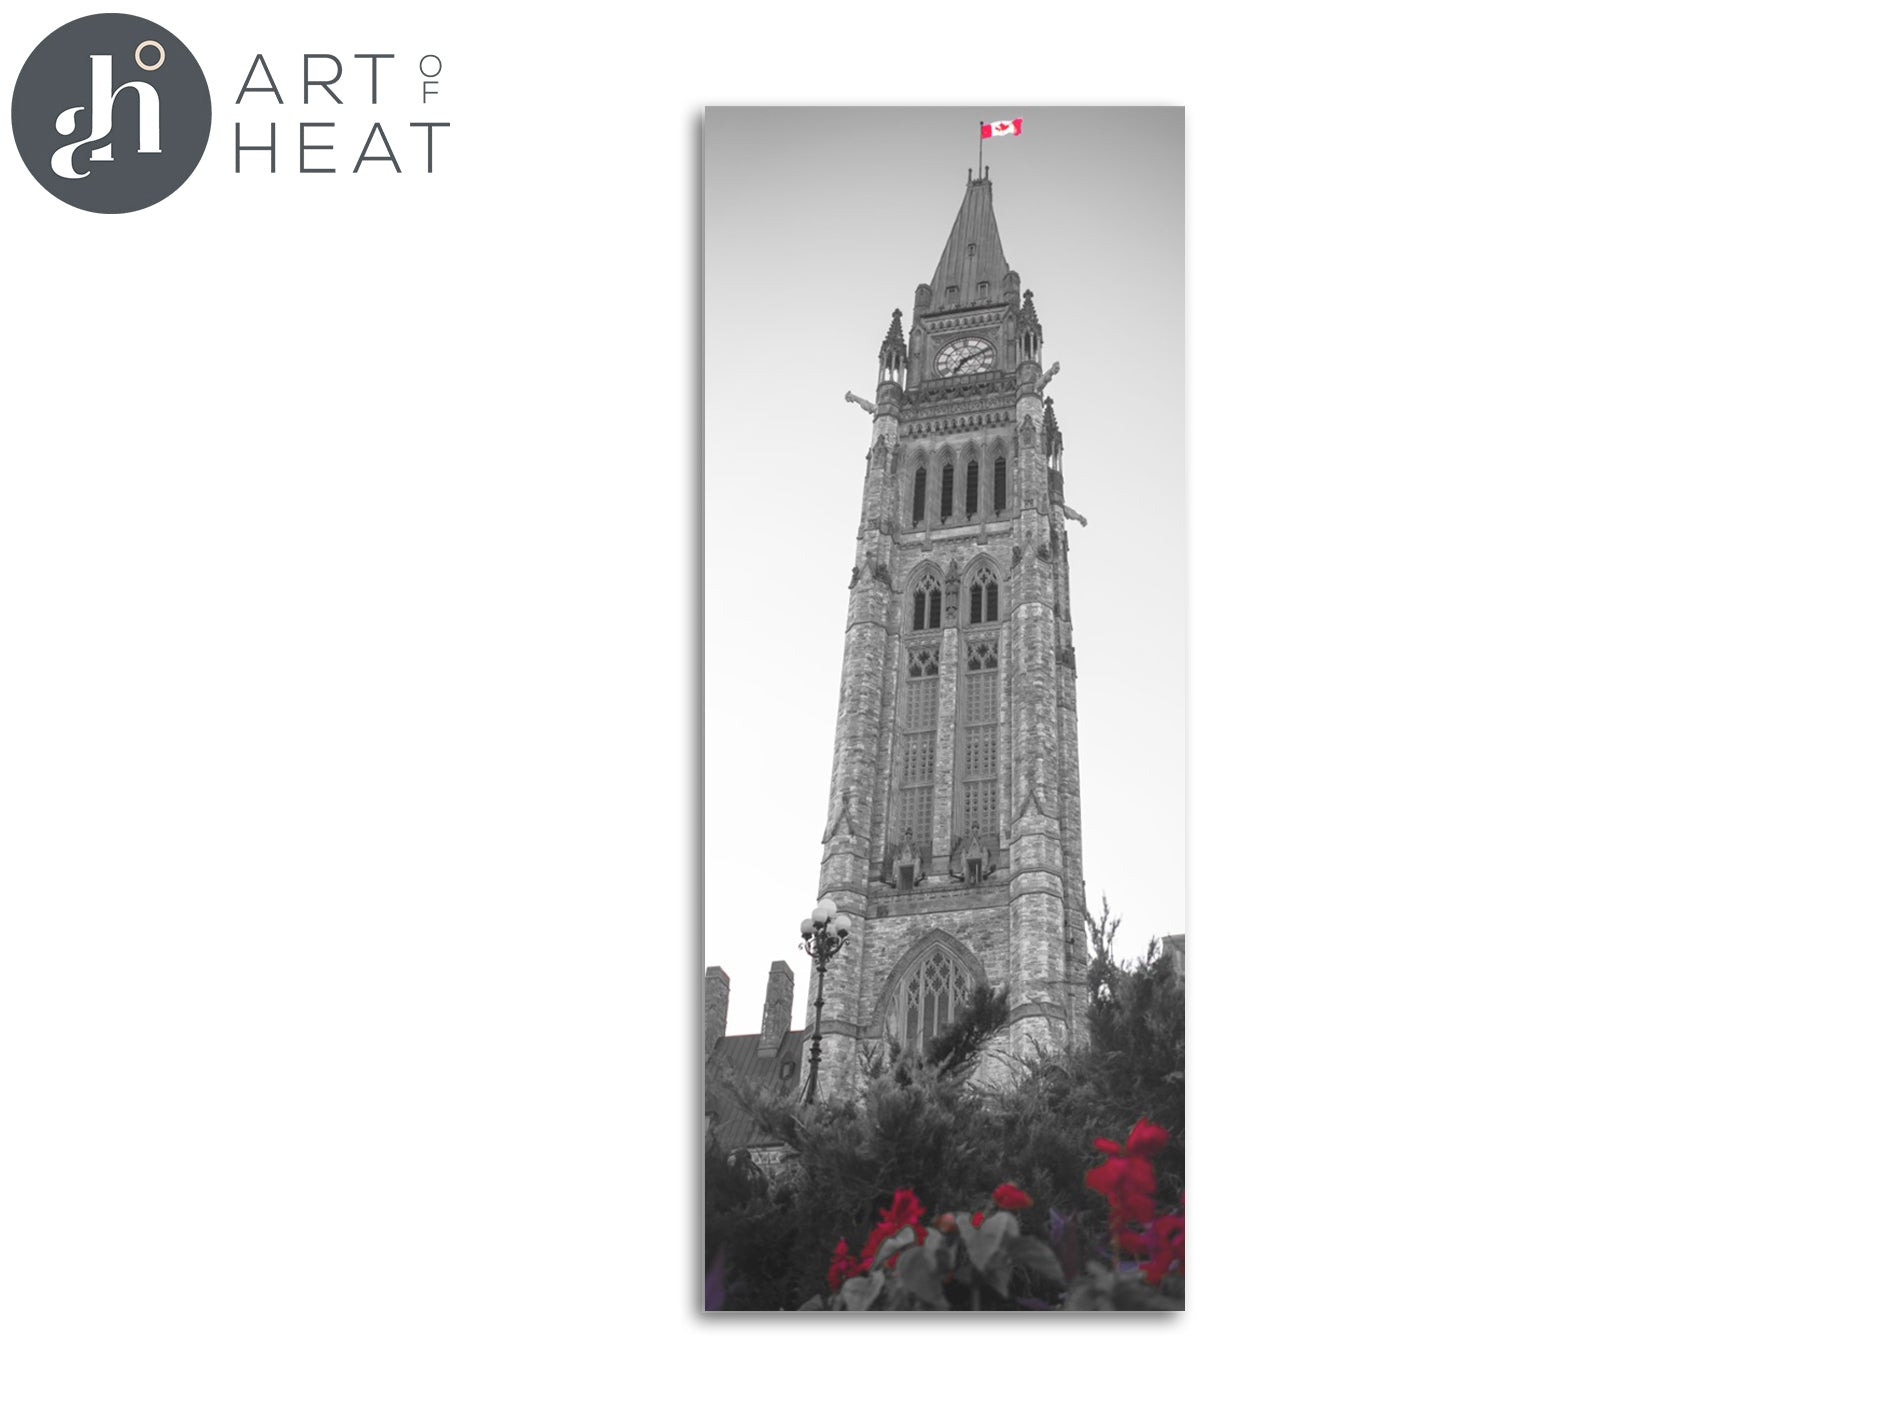 Limited Edition Peace Tower Panels - Price Includes Packaging & Delivery